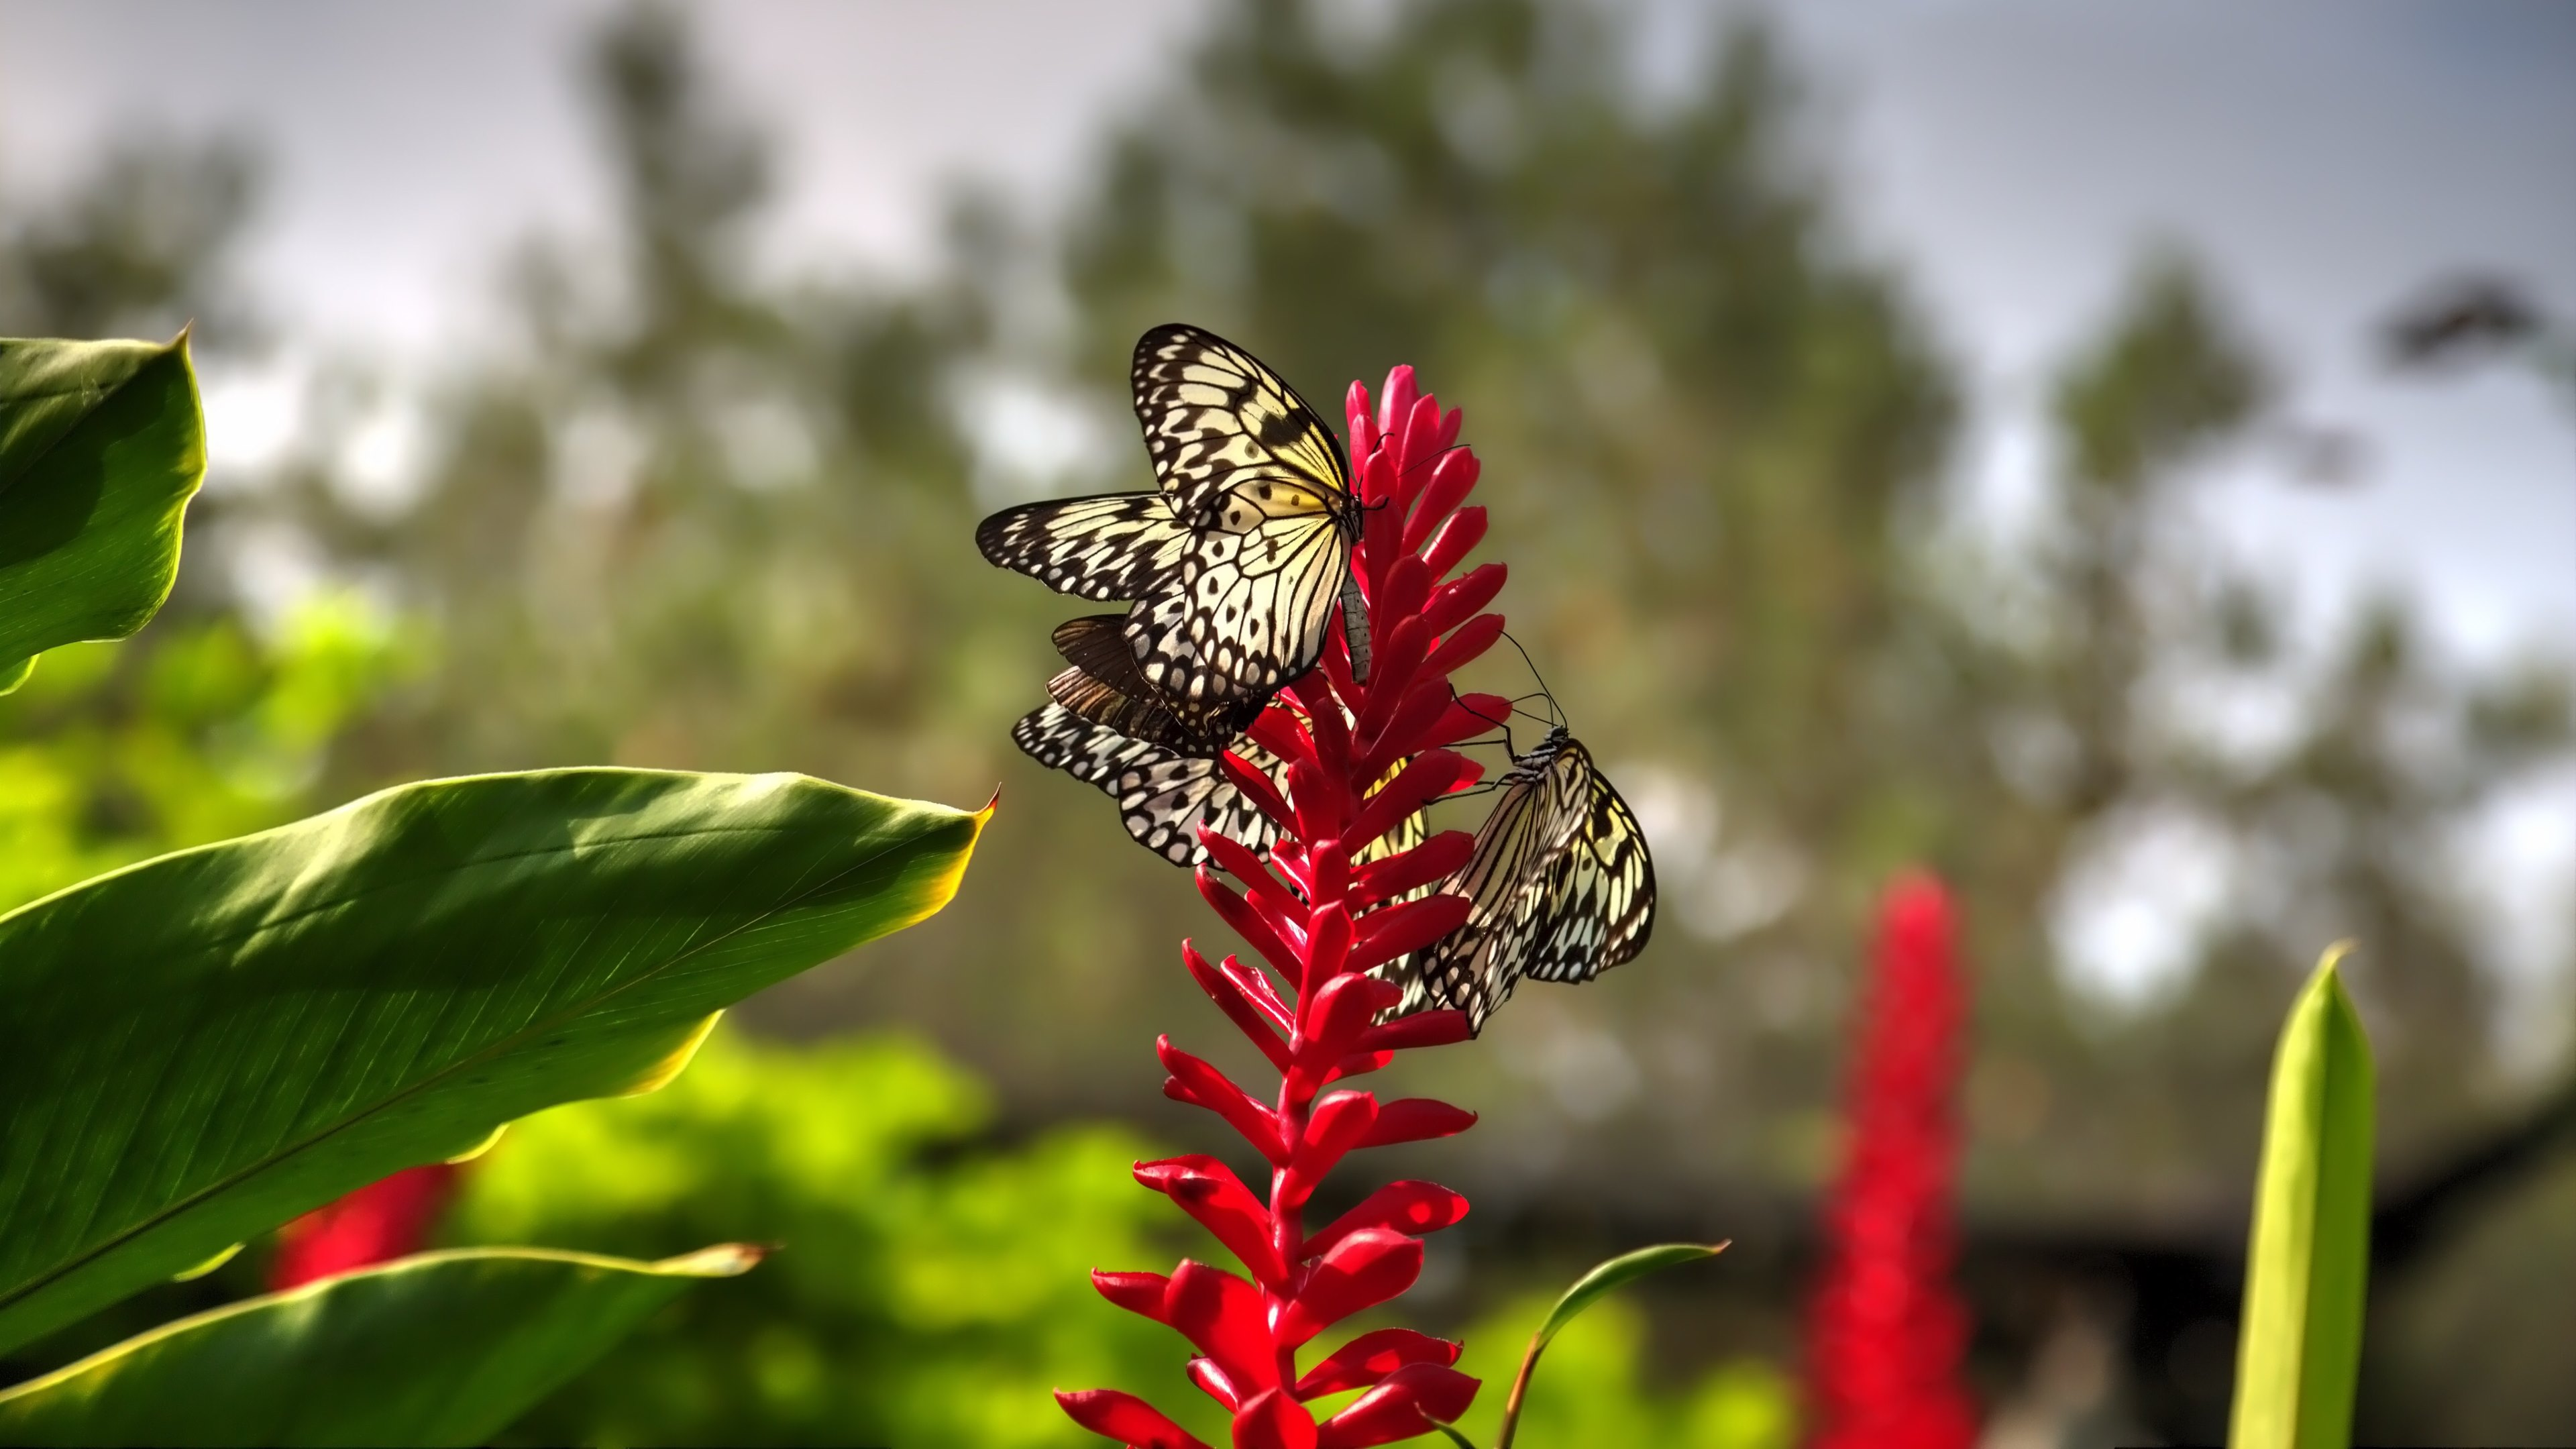 insects flowers butterflies hd wallpapers 4k